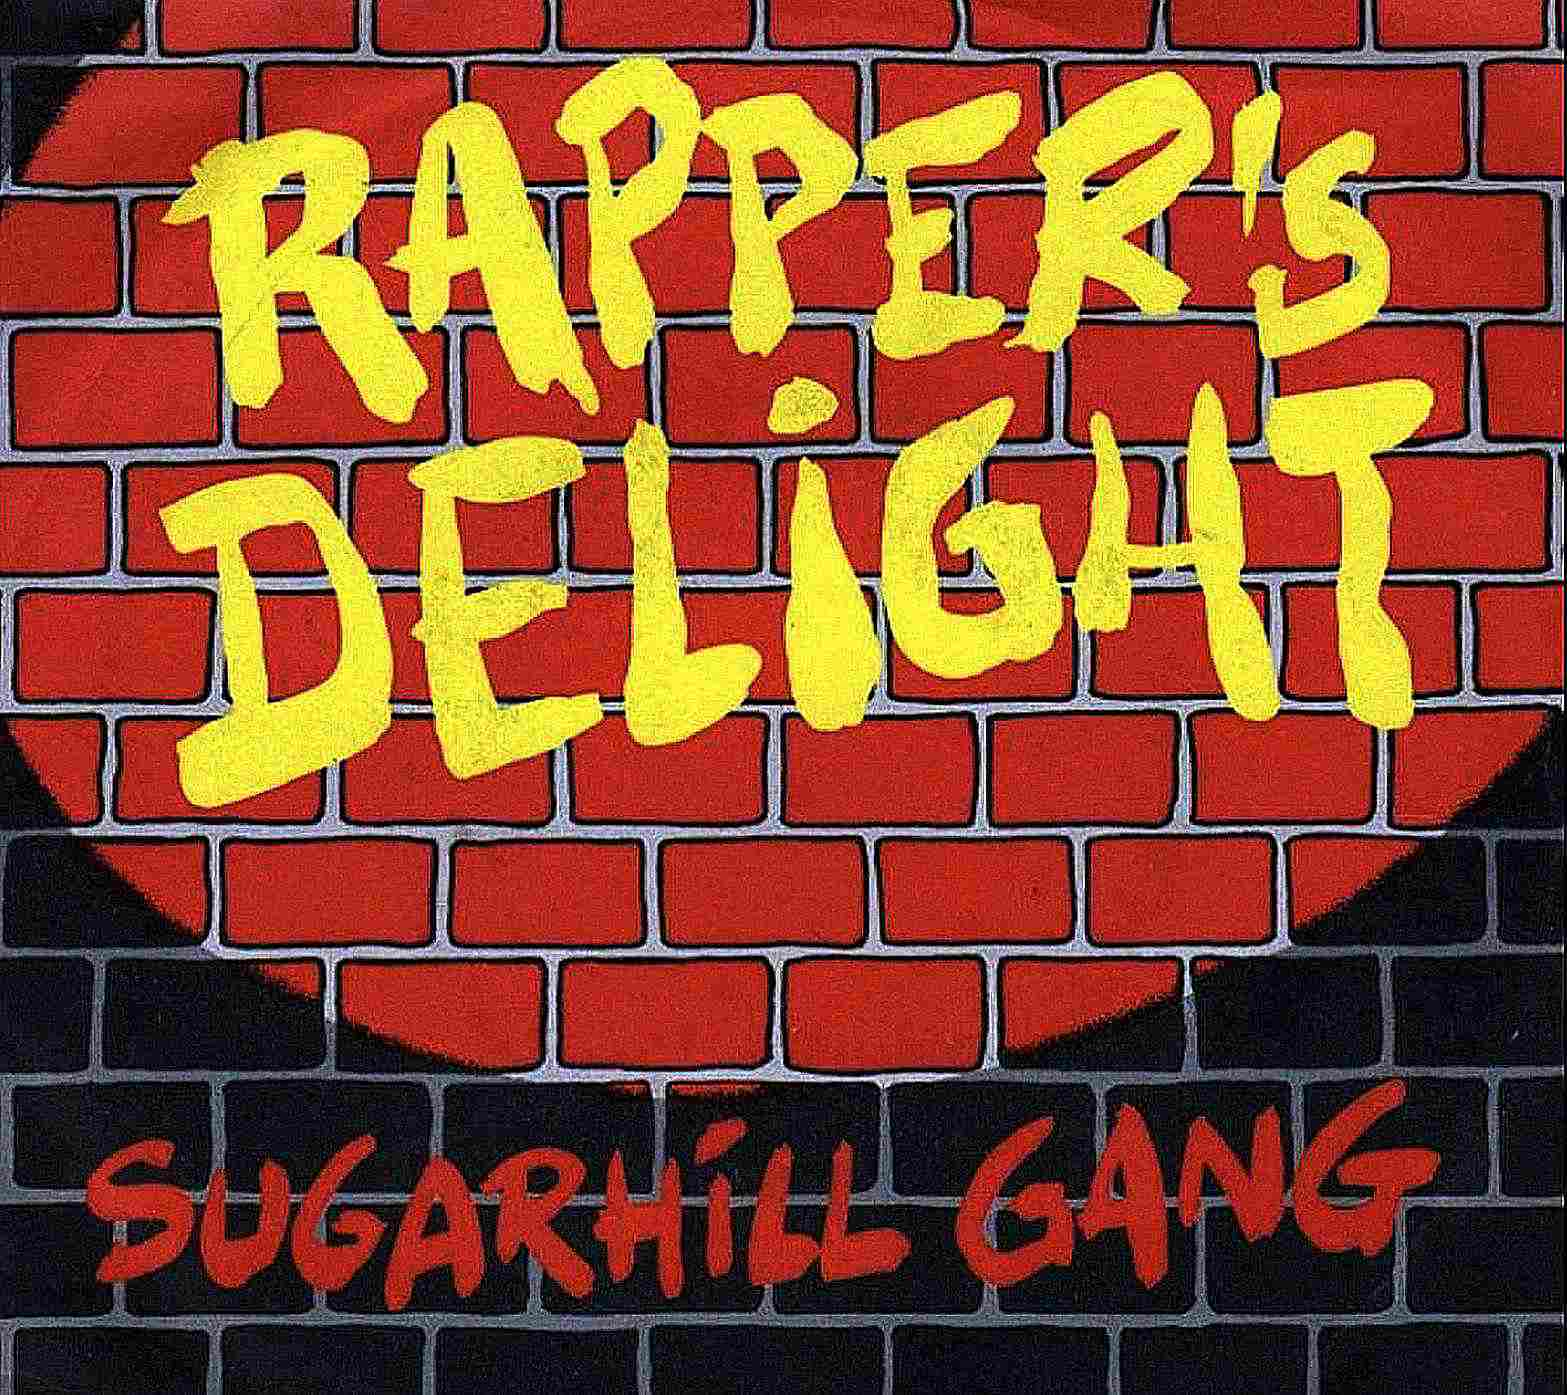 rappers-delight-sugarhill-gang cover art